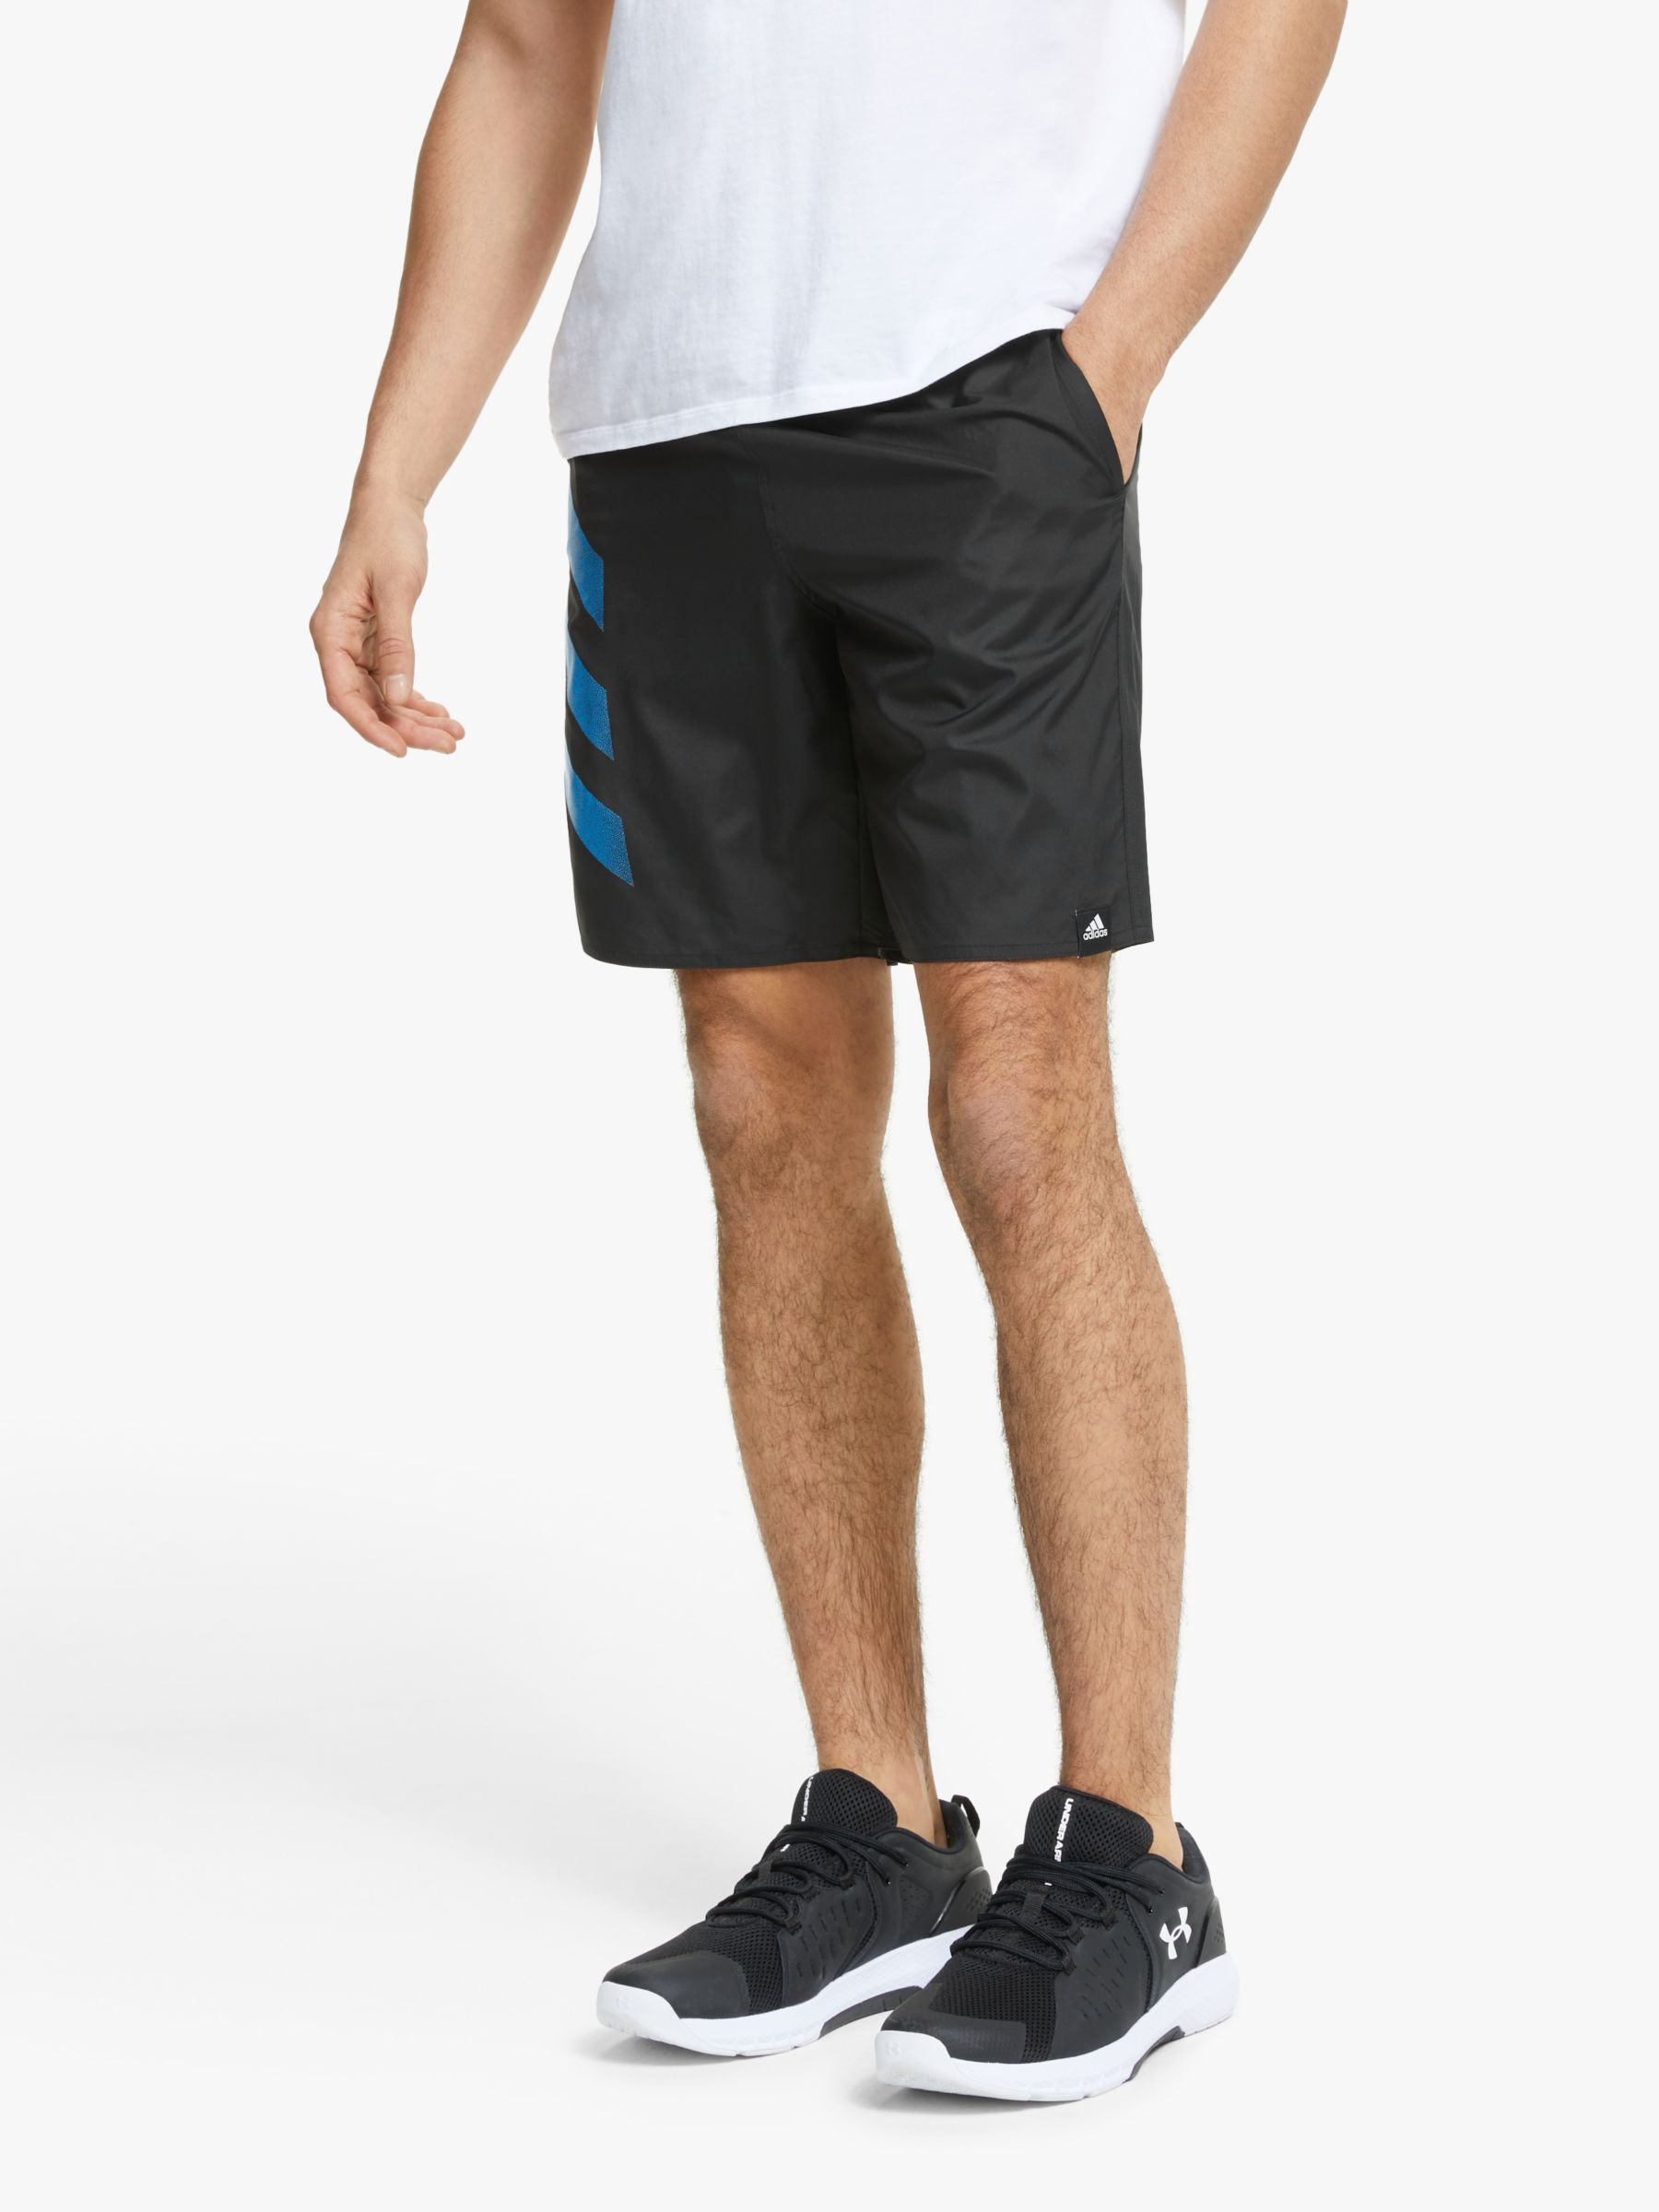 Adidas adidas Bold 3-Stripes CLX Swim Shorts